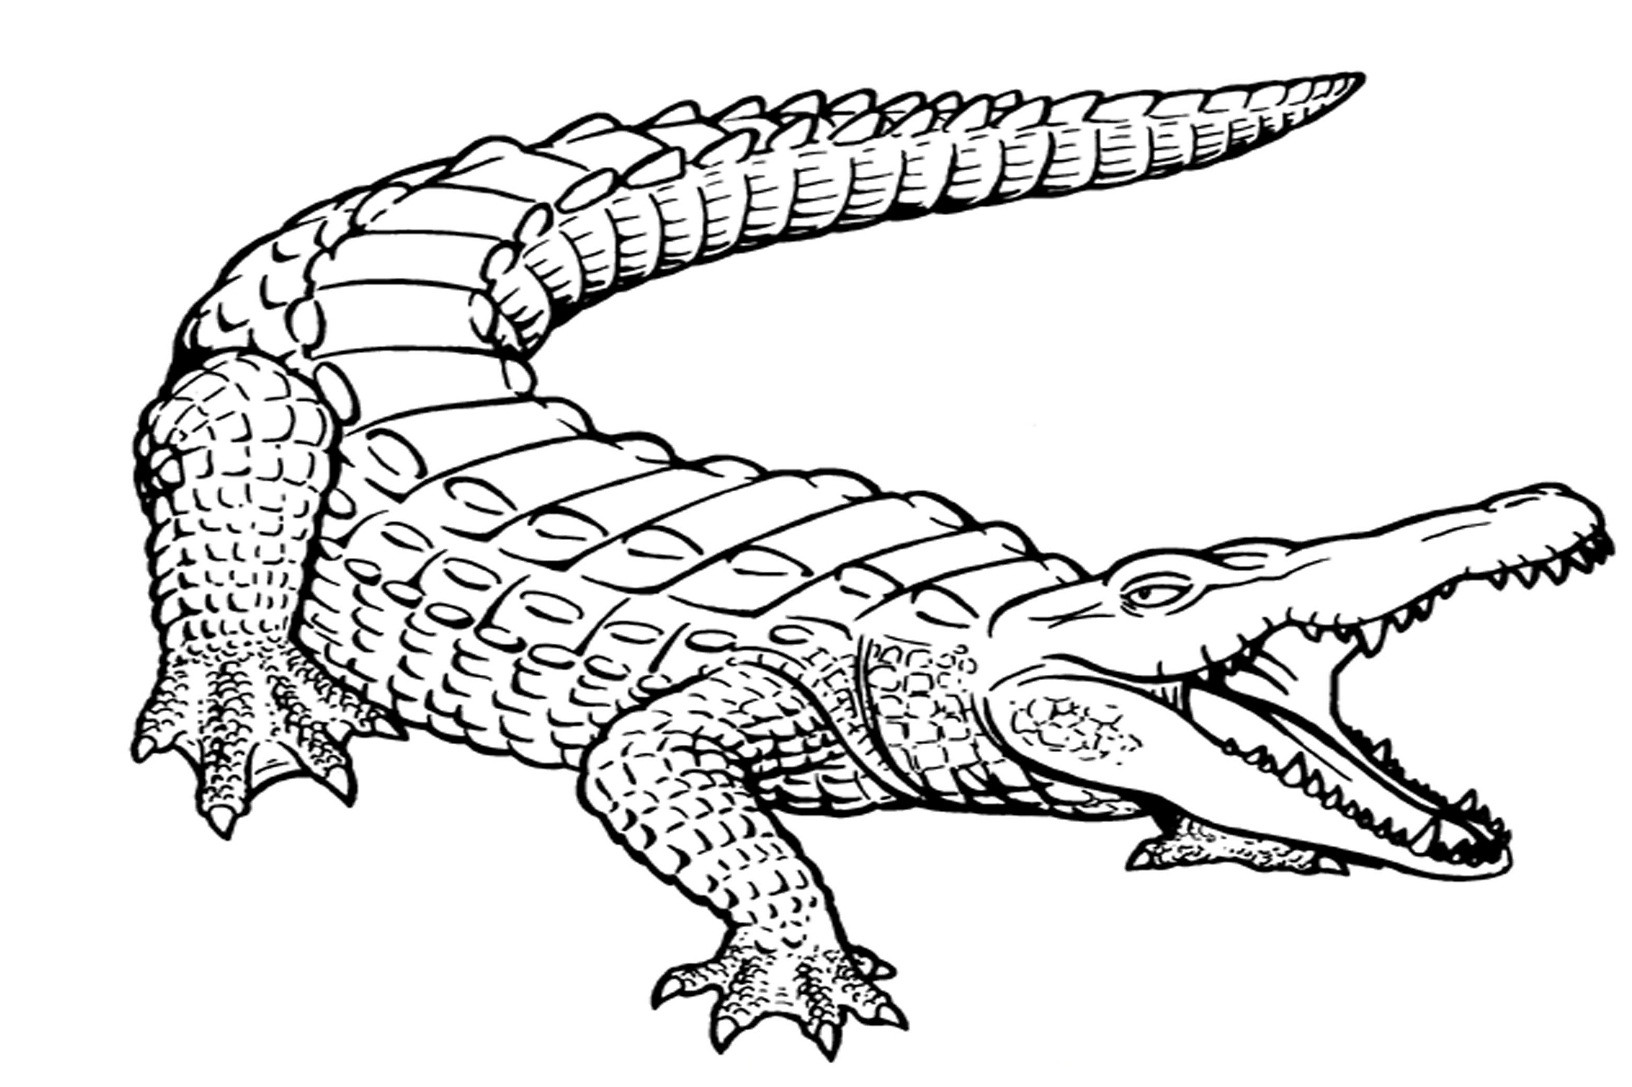 Free Coloring Pages Of Alligators  Free Printable Alligator Coloring Pages For Kids